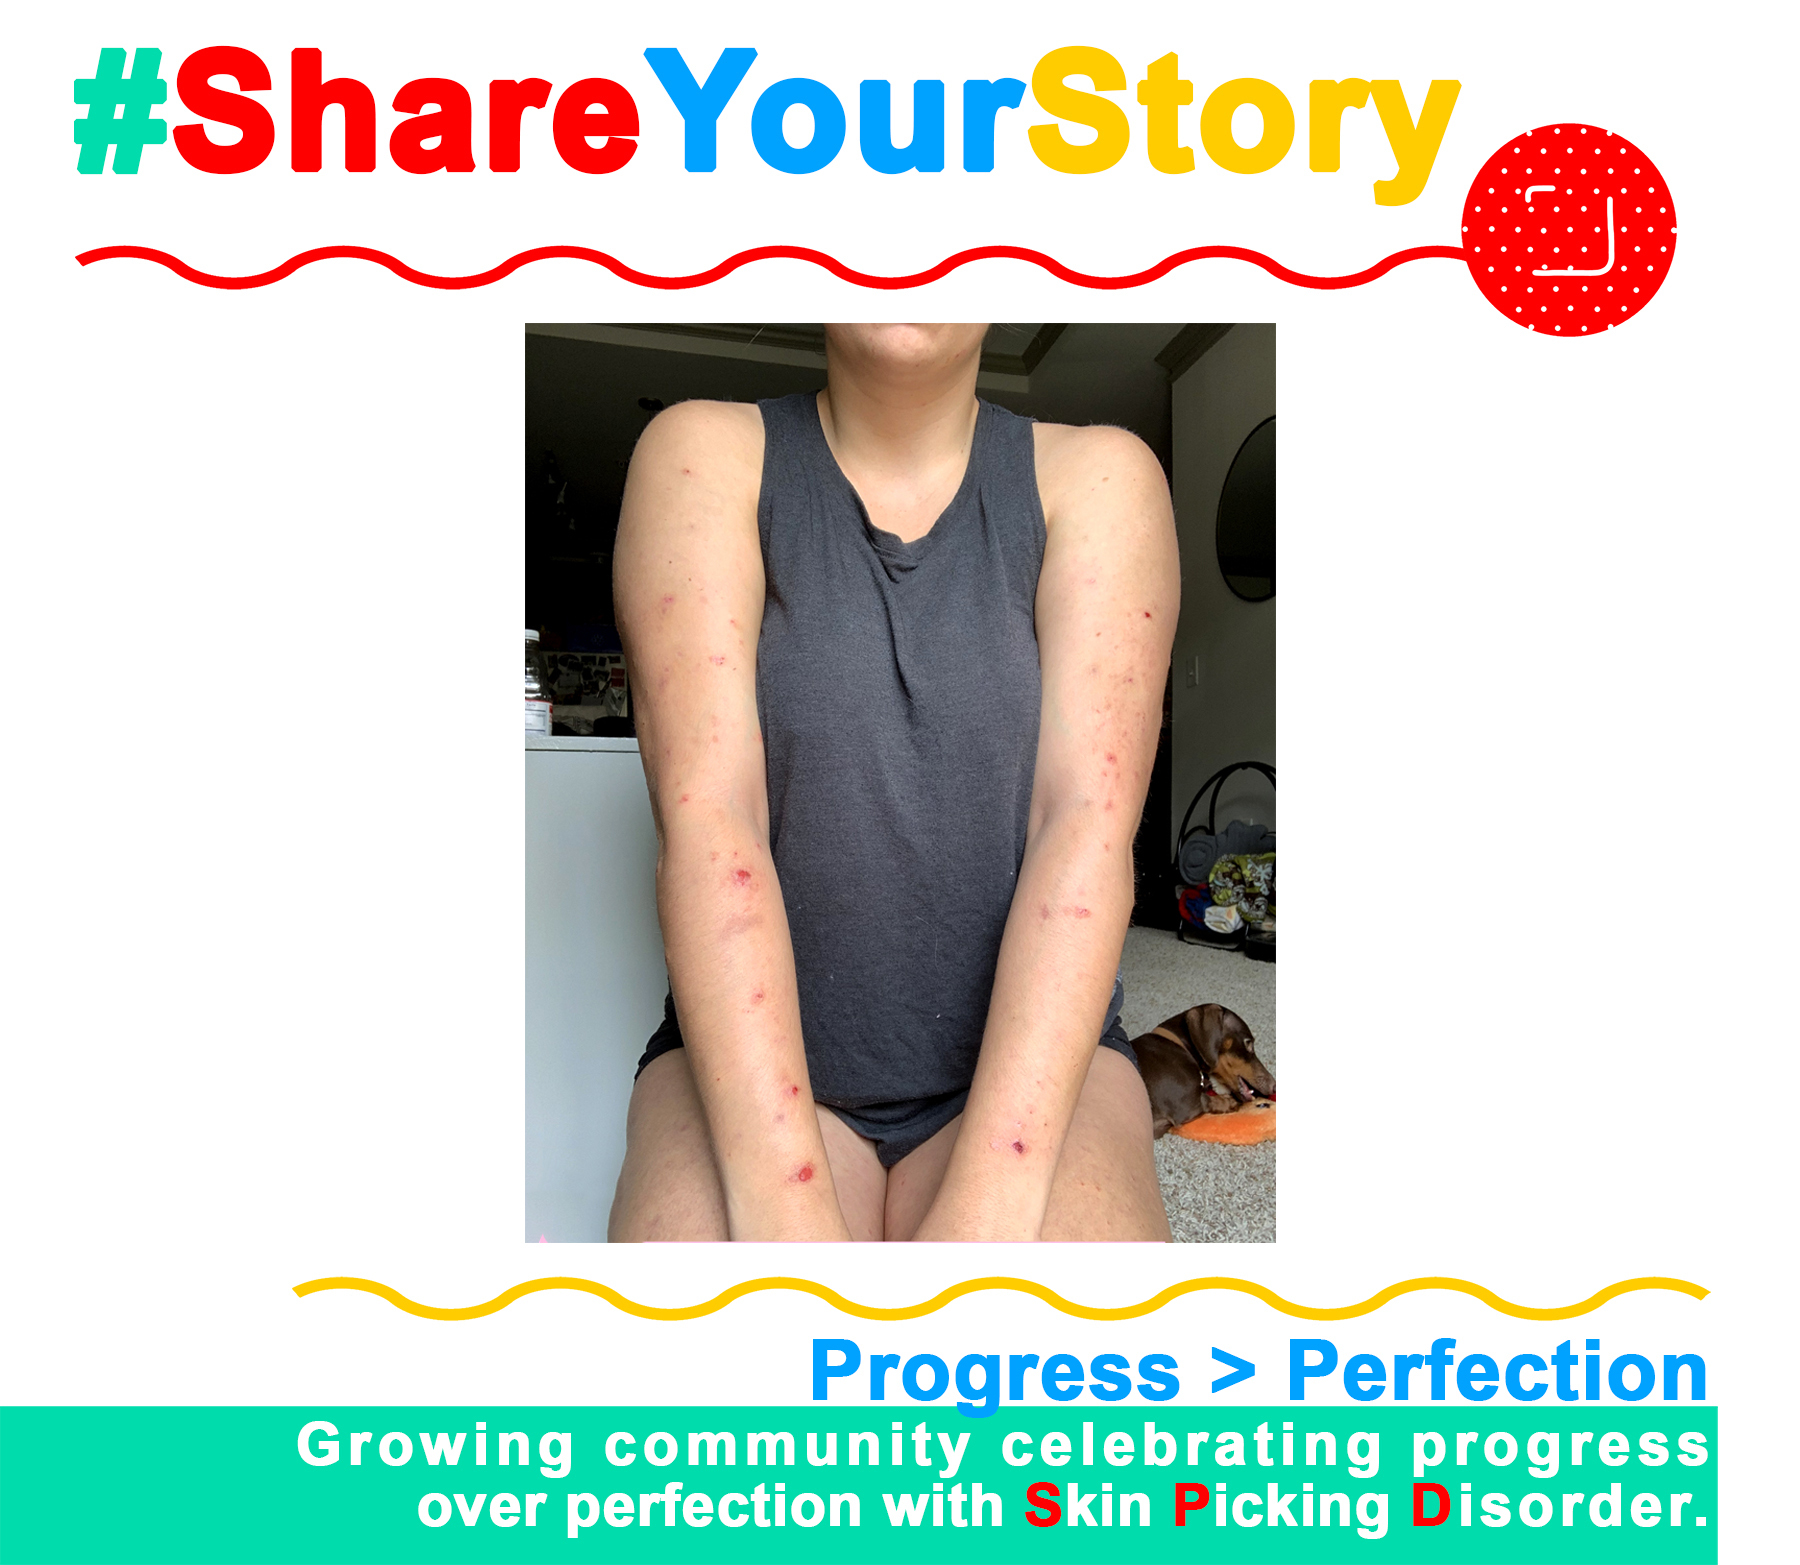 #ShareYourStory: Anonymous